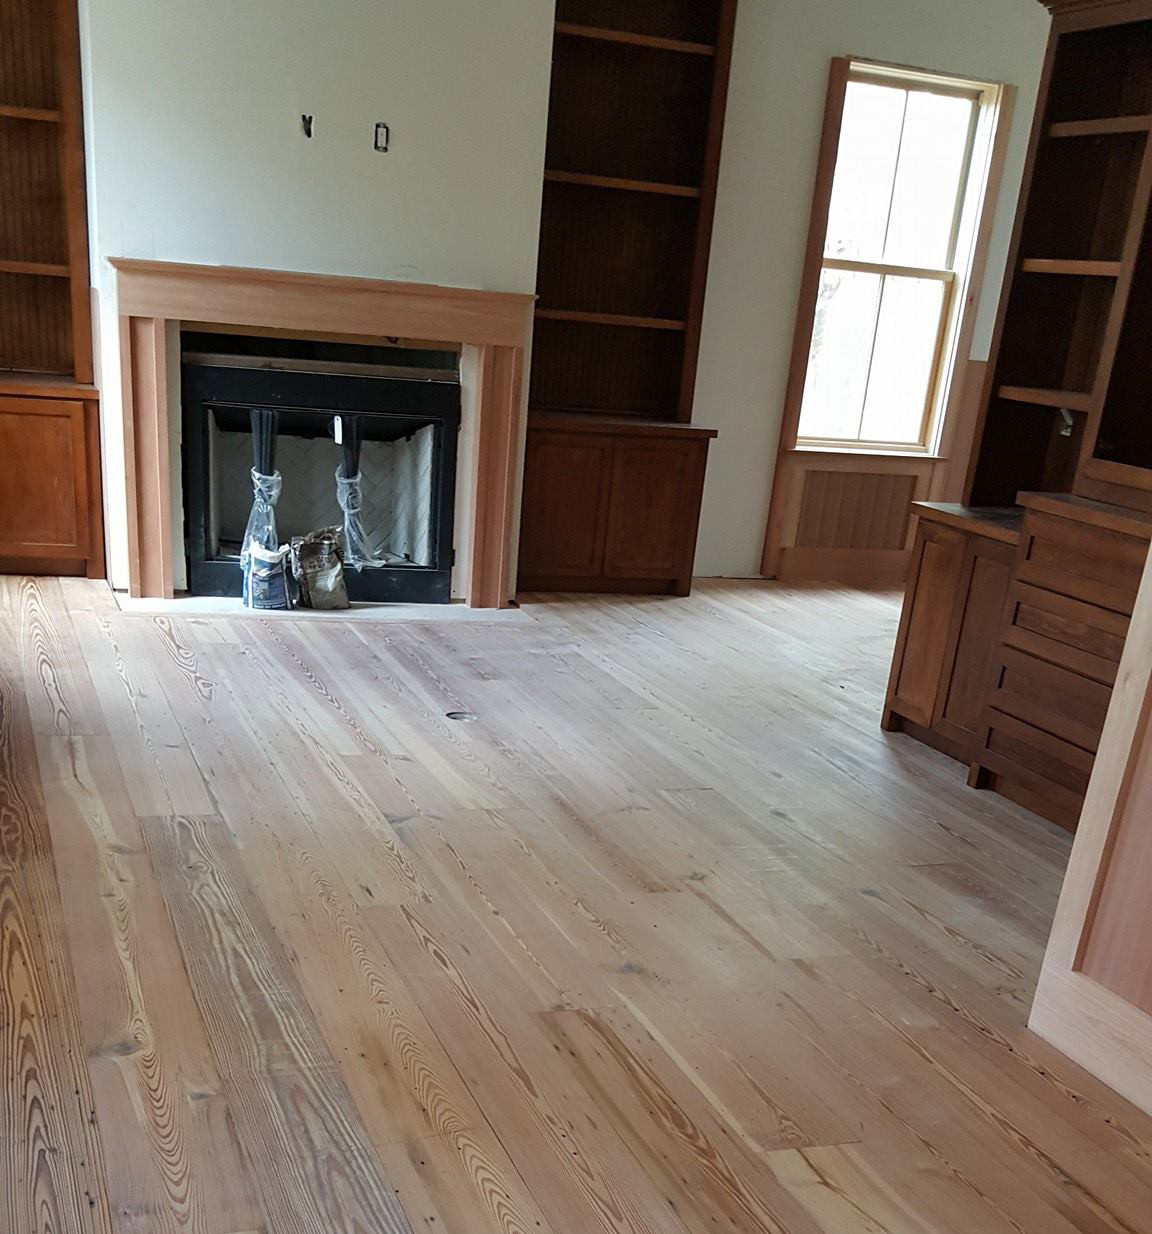 Bruce Hardwood Flooring Of Olde Savannah Hardwood Flooring for Sand and Refinish Existing Floors